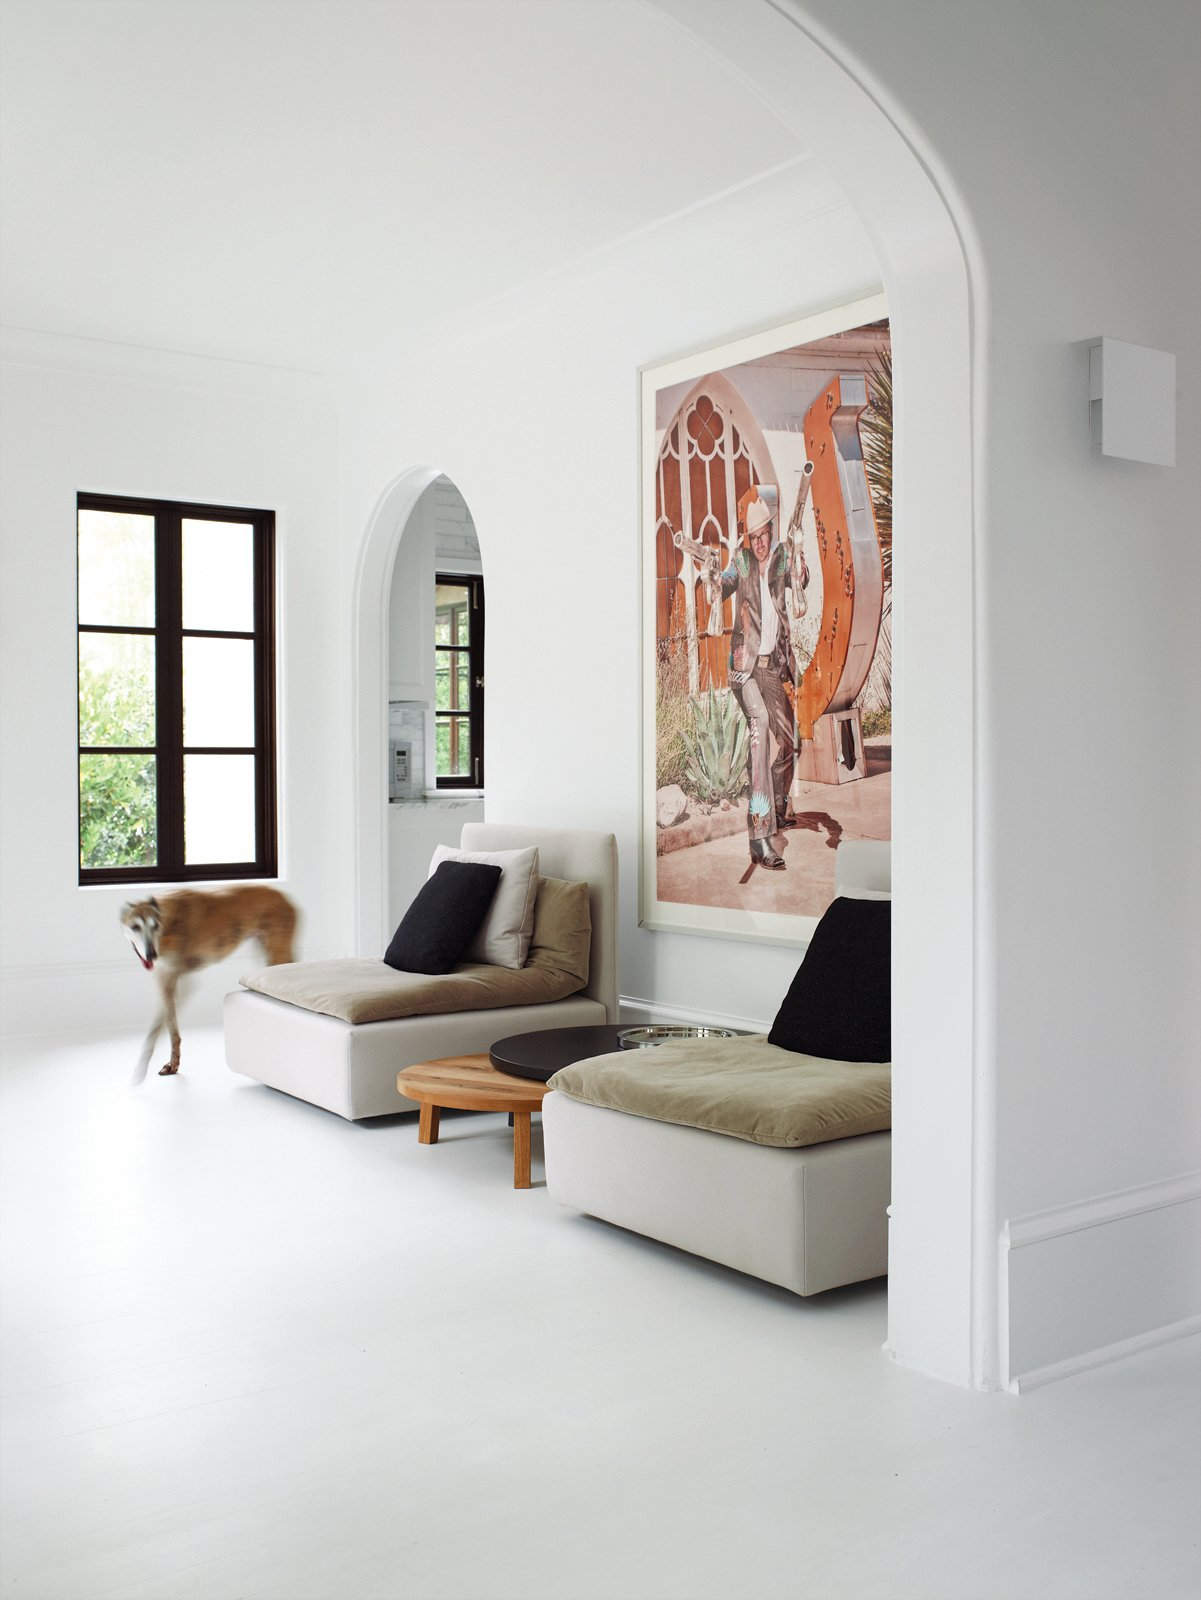 """Living Room, Chair, Coffee Tables, and Painted Wood Floor Two pieces from E15's Shiraz sofa flank   the company's wooden Leila side tables.   Hill chose to use flat paint in Benjamin Moore's Decorators White throughout the home   because it emphasizes the chalkiness of the plaster walls, making them """"look almost like slate."""" The sconce shown in the foreground—David Chipperfield's Corrubedo design for   FontanaArte—gives off a soft glow and   replaces the dozens of paper-lampshade   wall fixtures the owners found in the house when they bought it. Stewart Cohen's   zany photograph of a gun-toting Marfa   resident encapsulates Barbara Hill's offbeat brand of decorating: bright and minimal,   yet darkly humorous.  Photo 1 of 9 in A Designer Brings Her Bold Brand of Texas Modern to this Atlanta Family Home"""